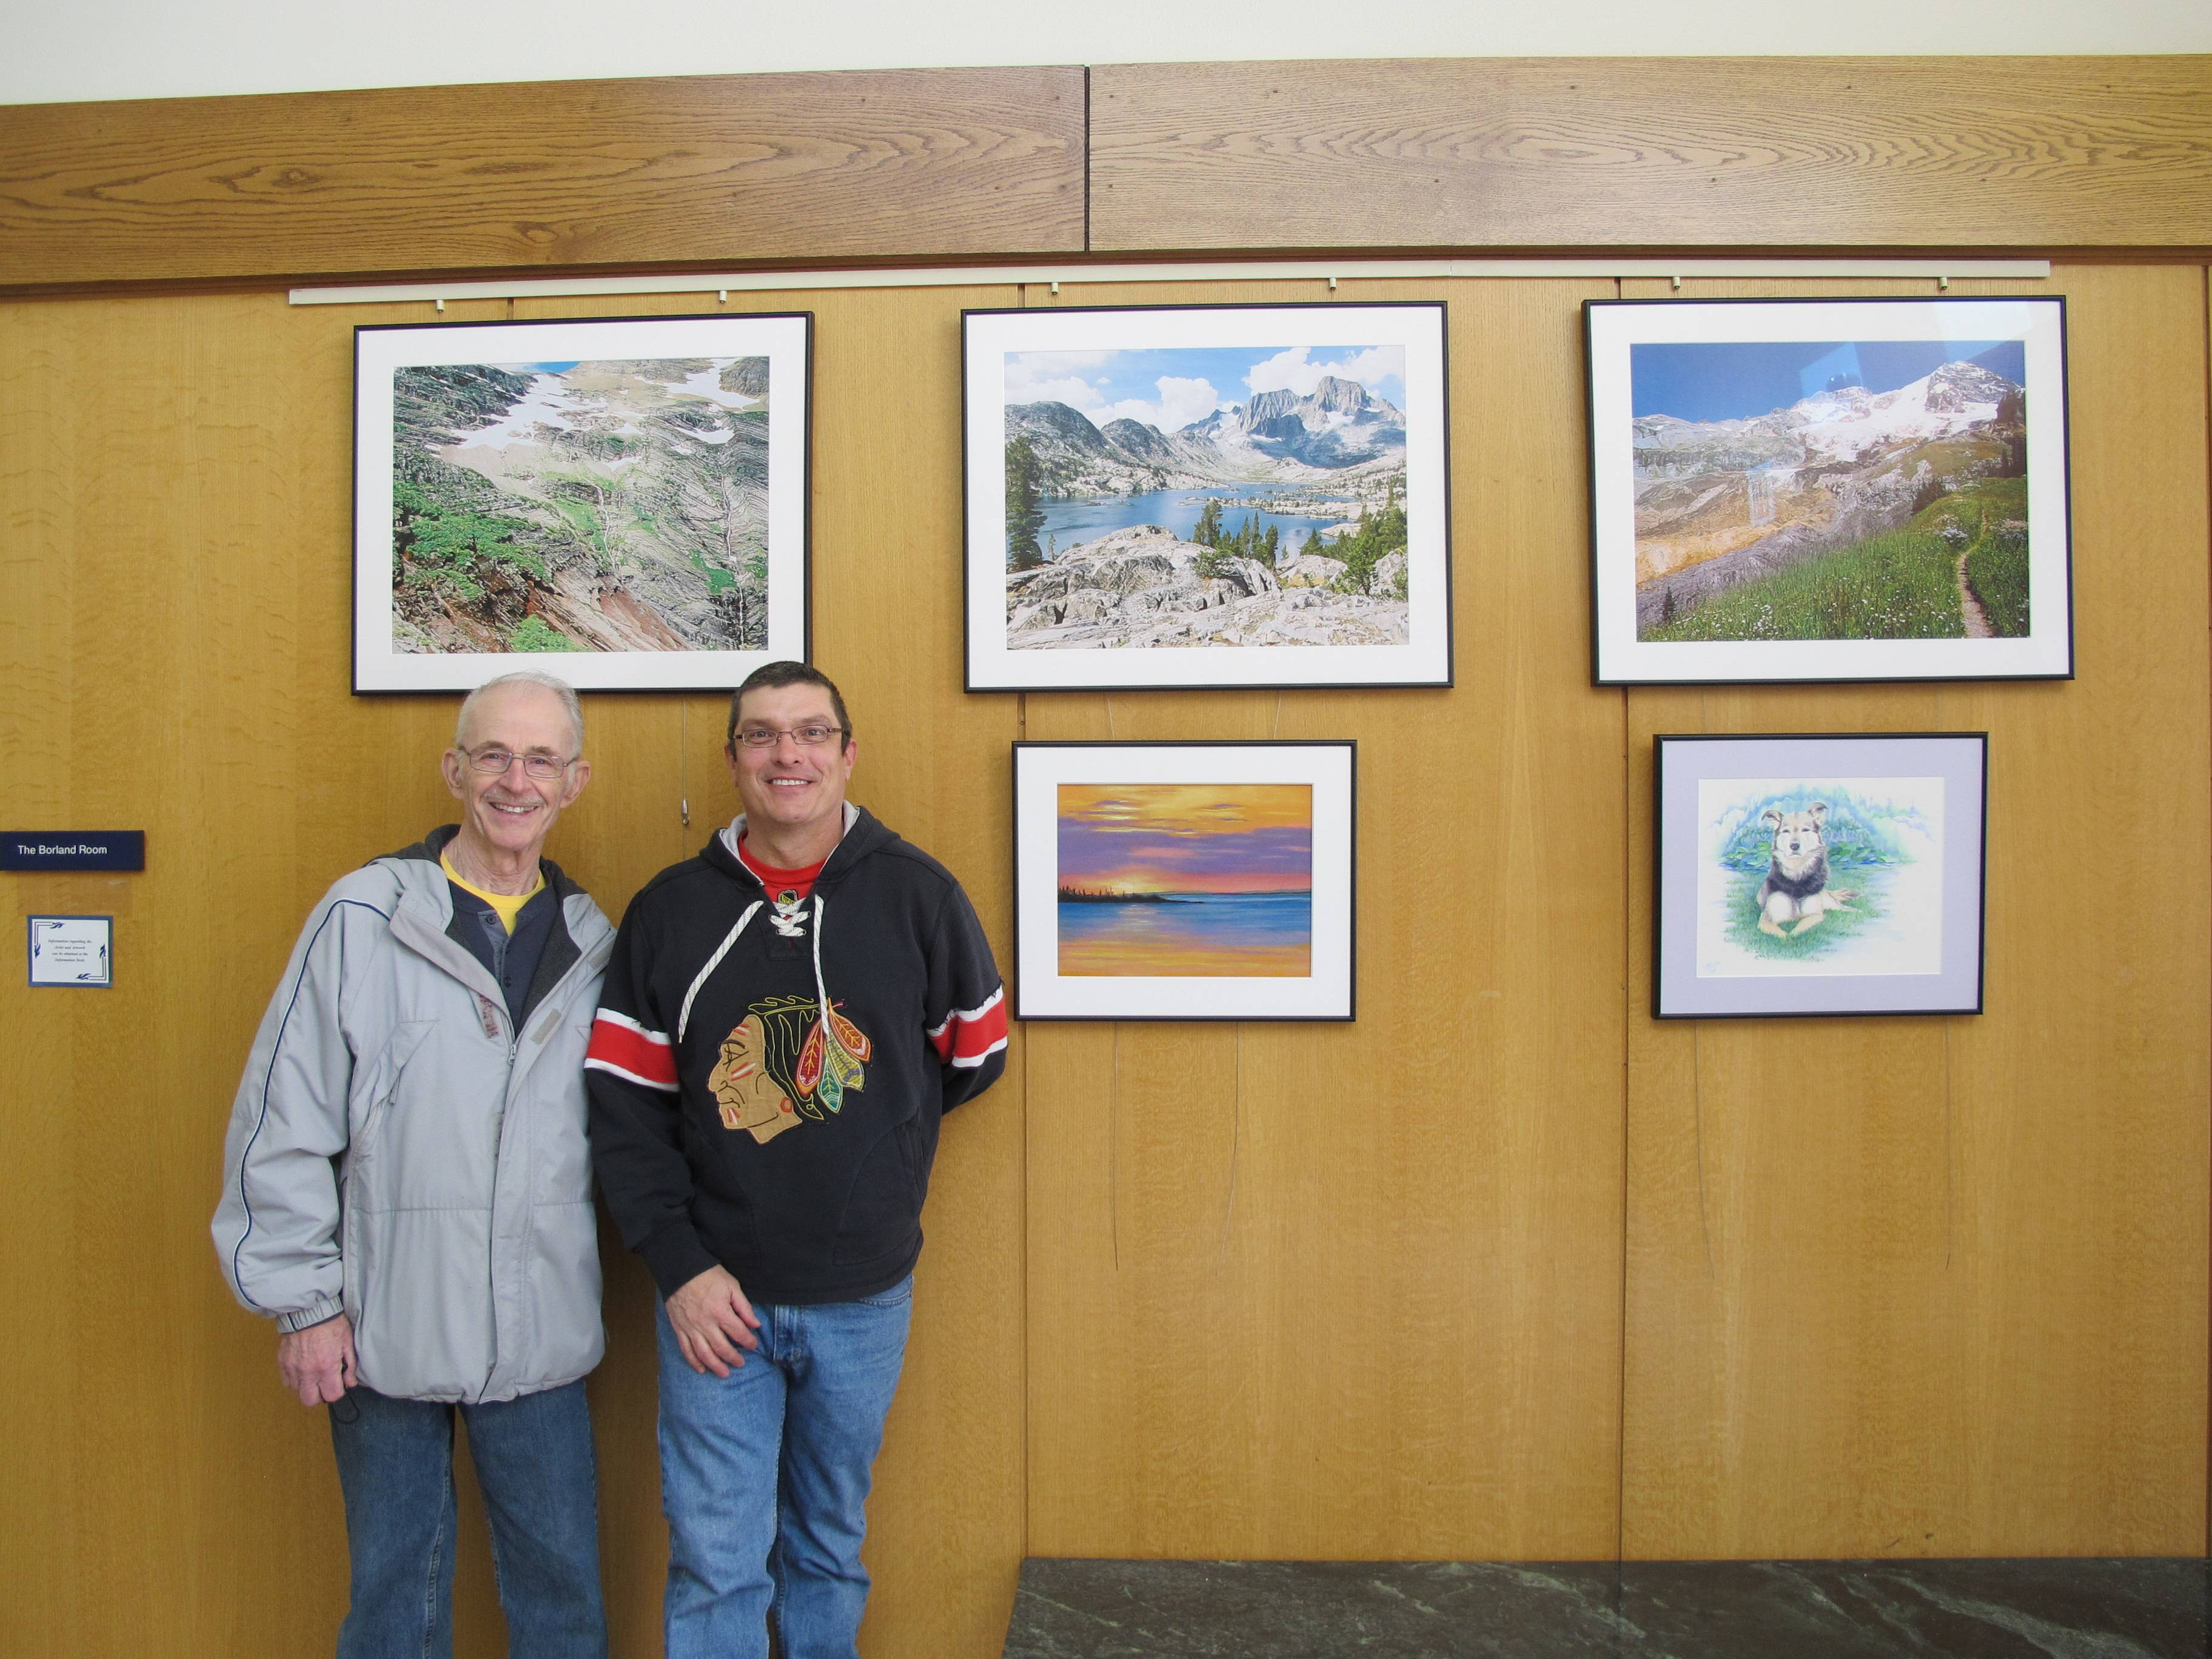 April Lobby Artists and local residents Michael Durmus and Dave Coughlin